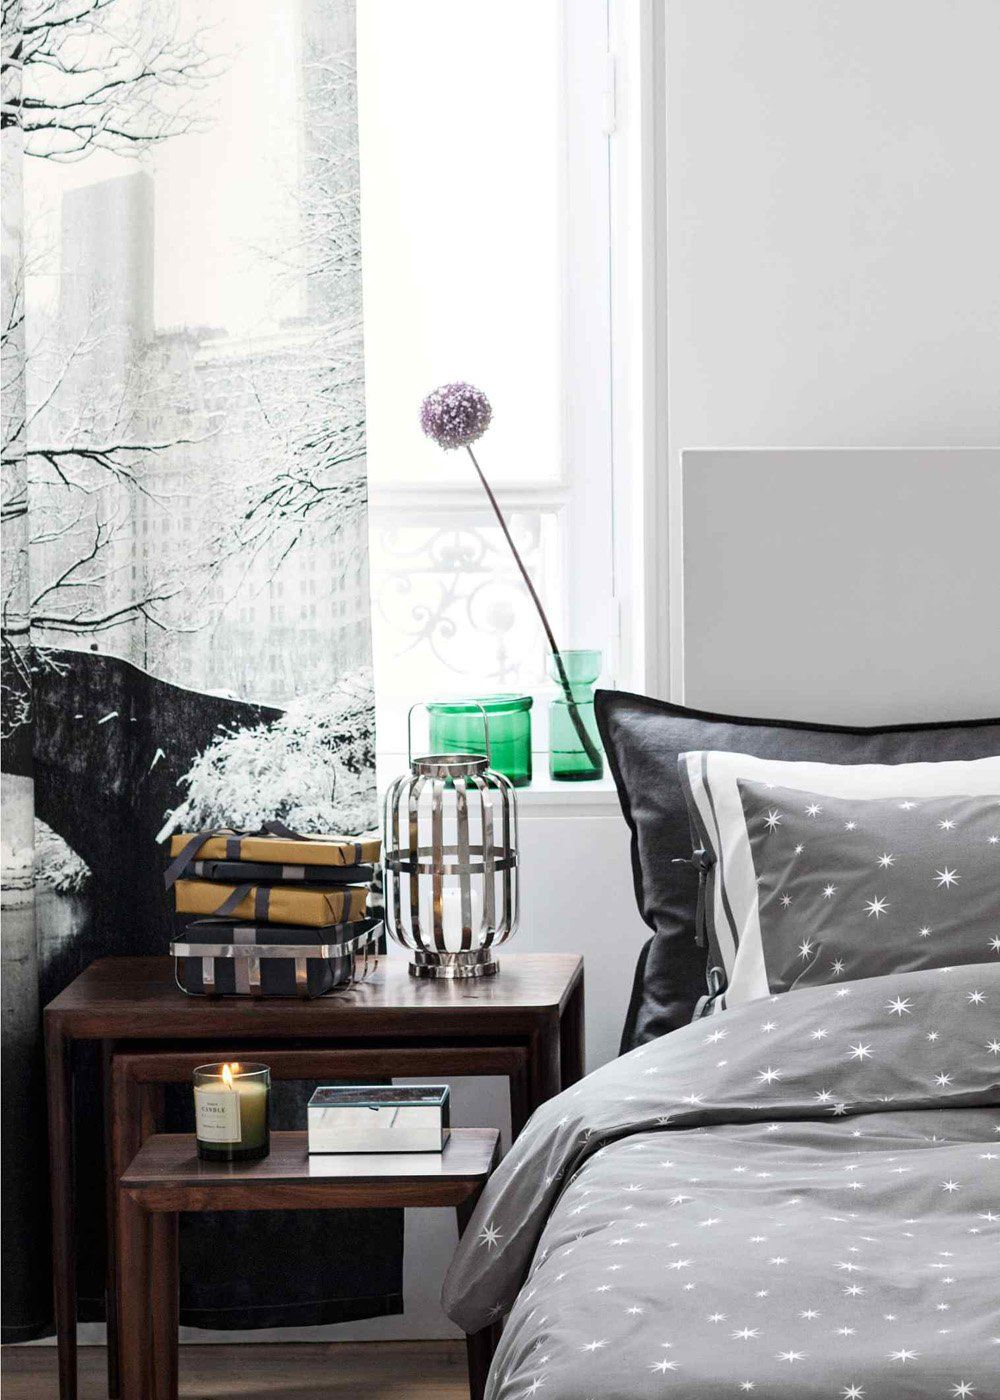 White and light gray color scheme for the modern bedroom with tulle on the window